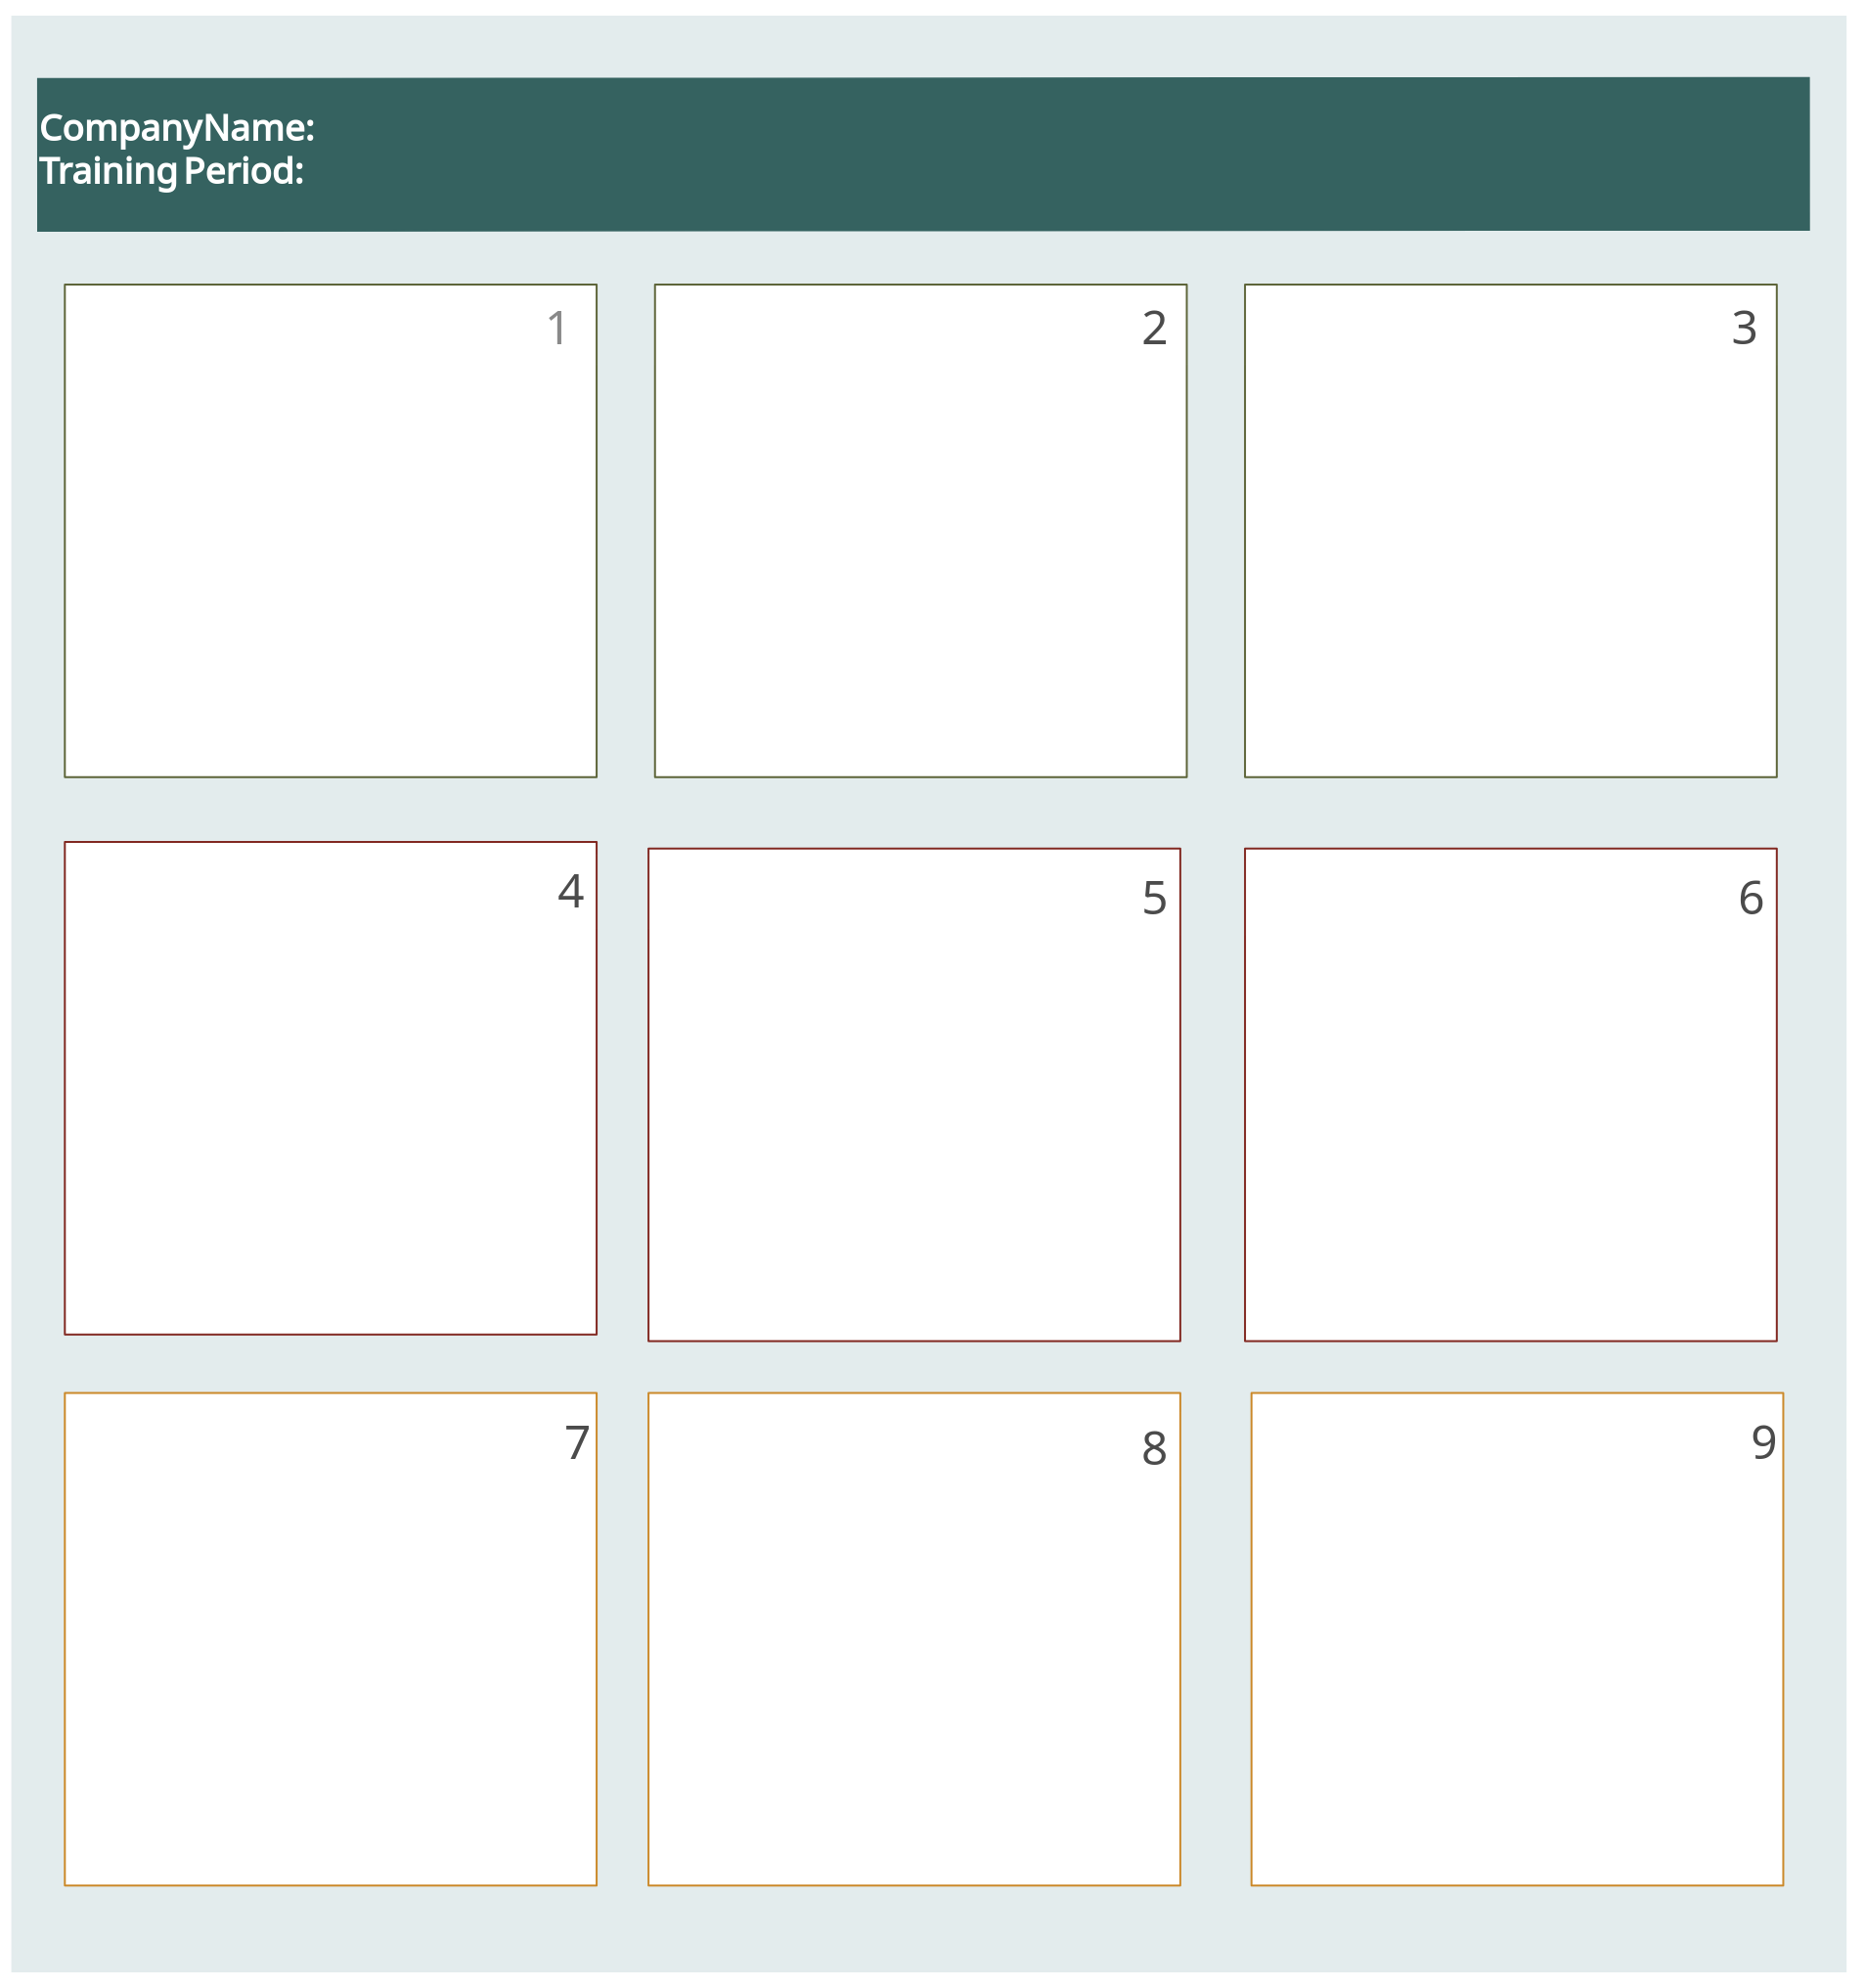 Storyboard Template for Employee Training